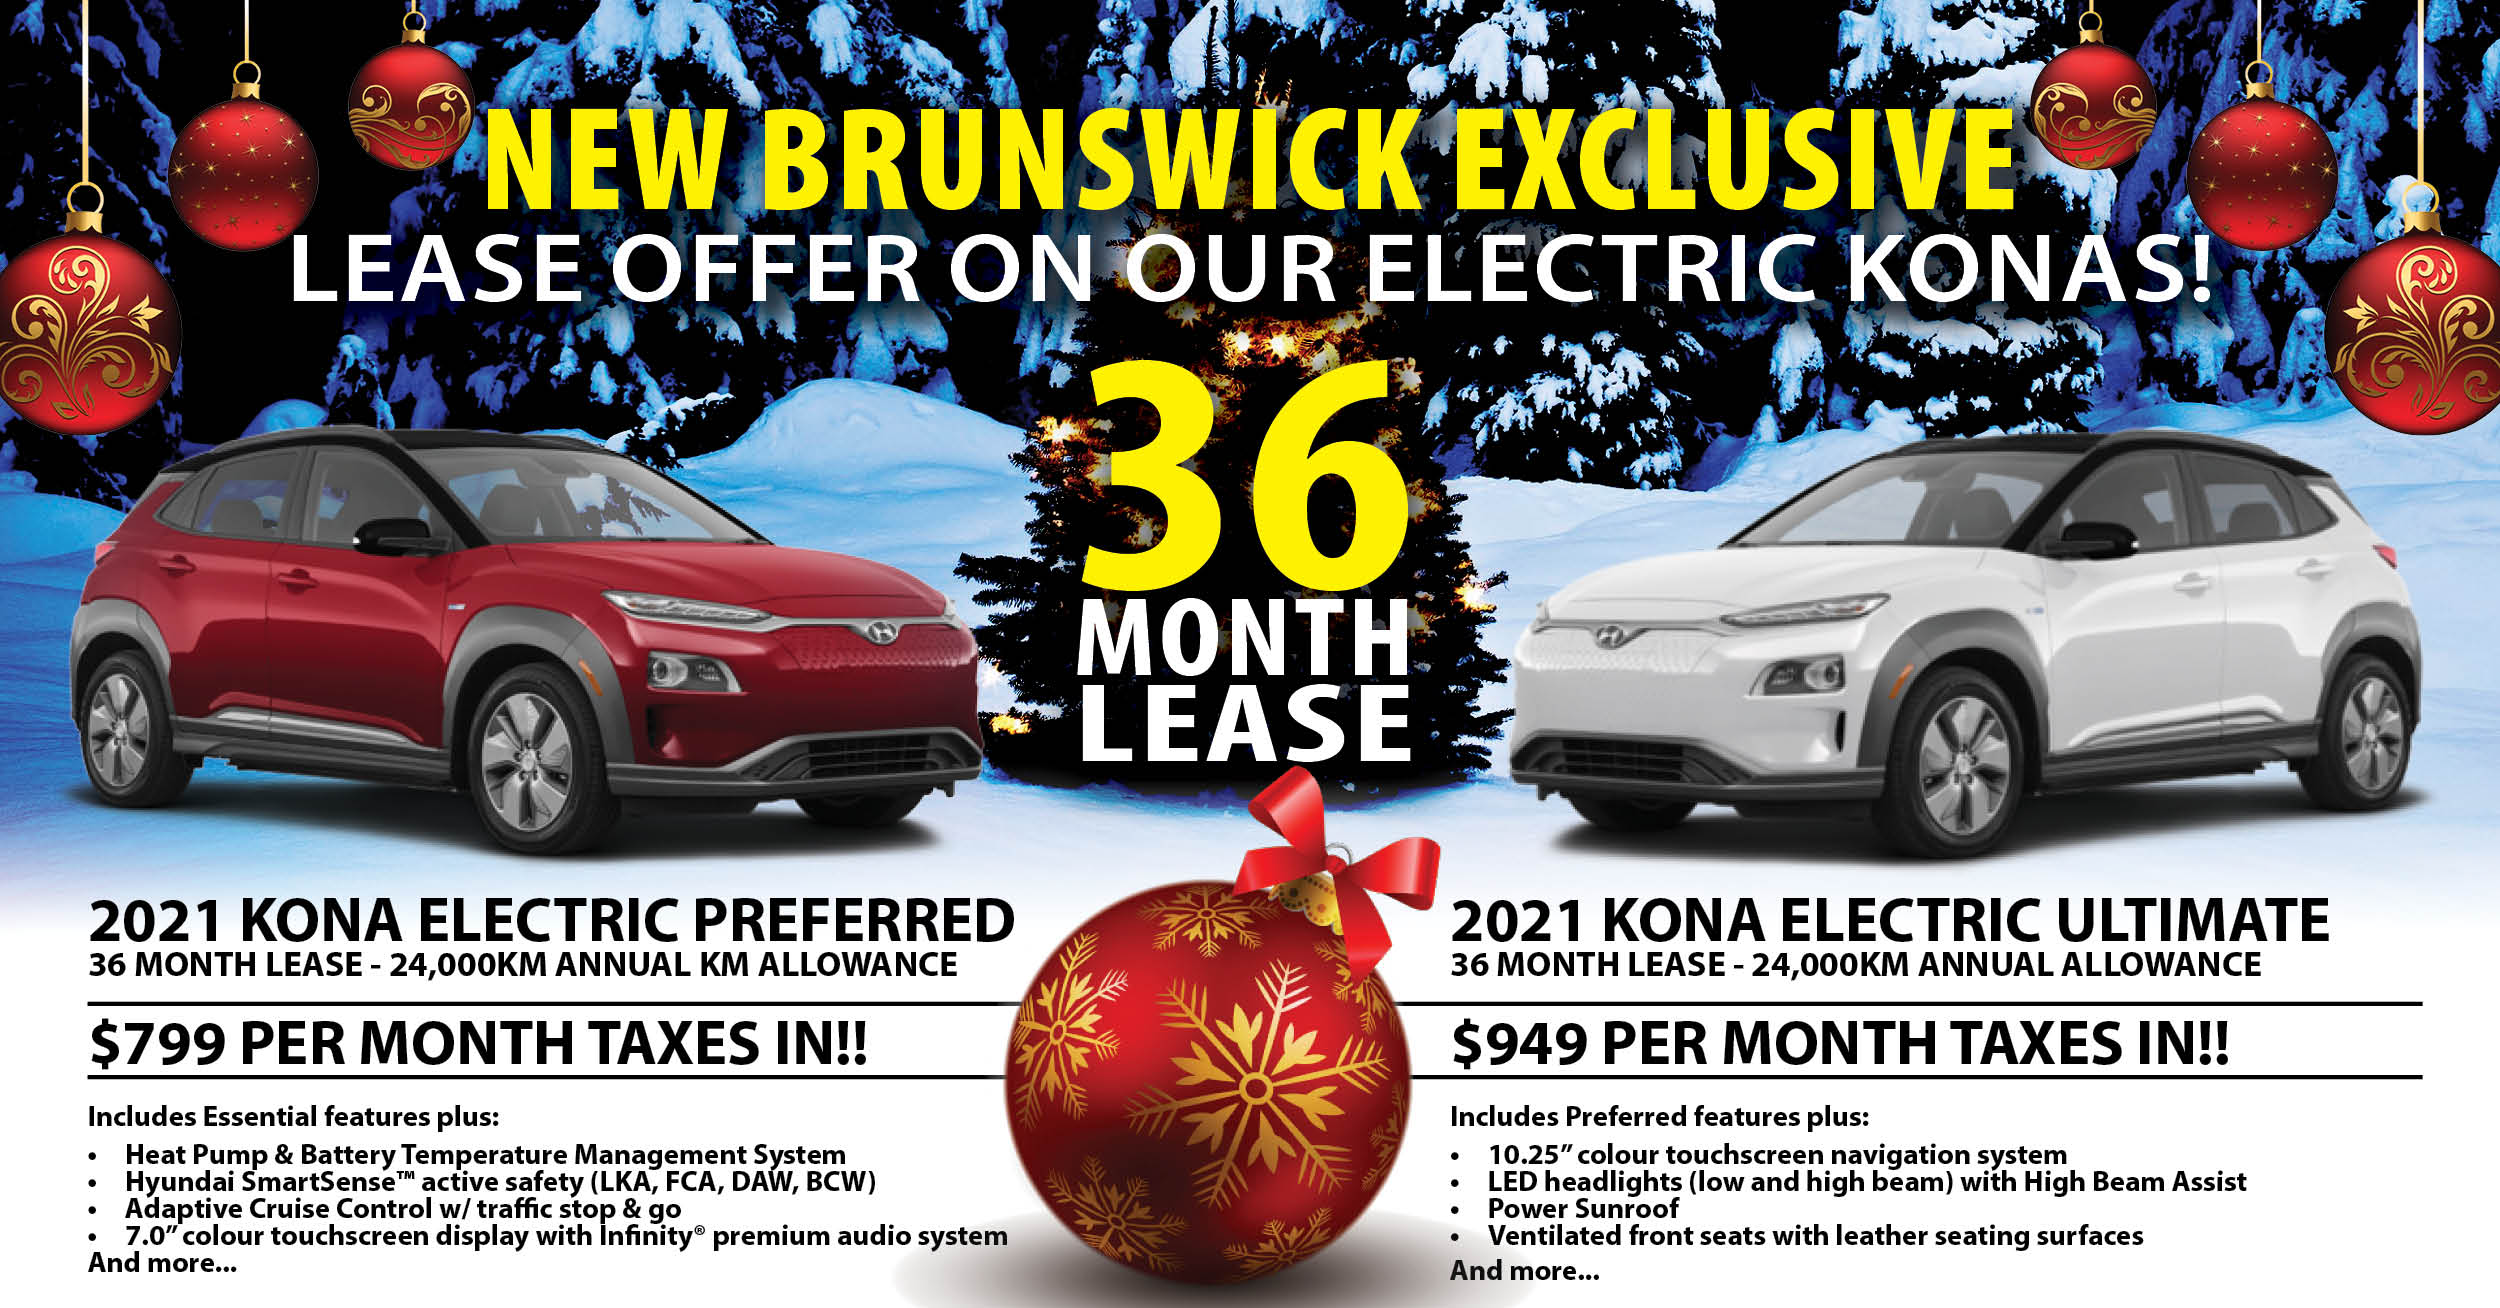 Electric Kona 36 Month Lease! Incredible deals!